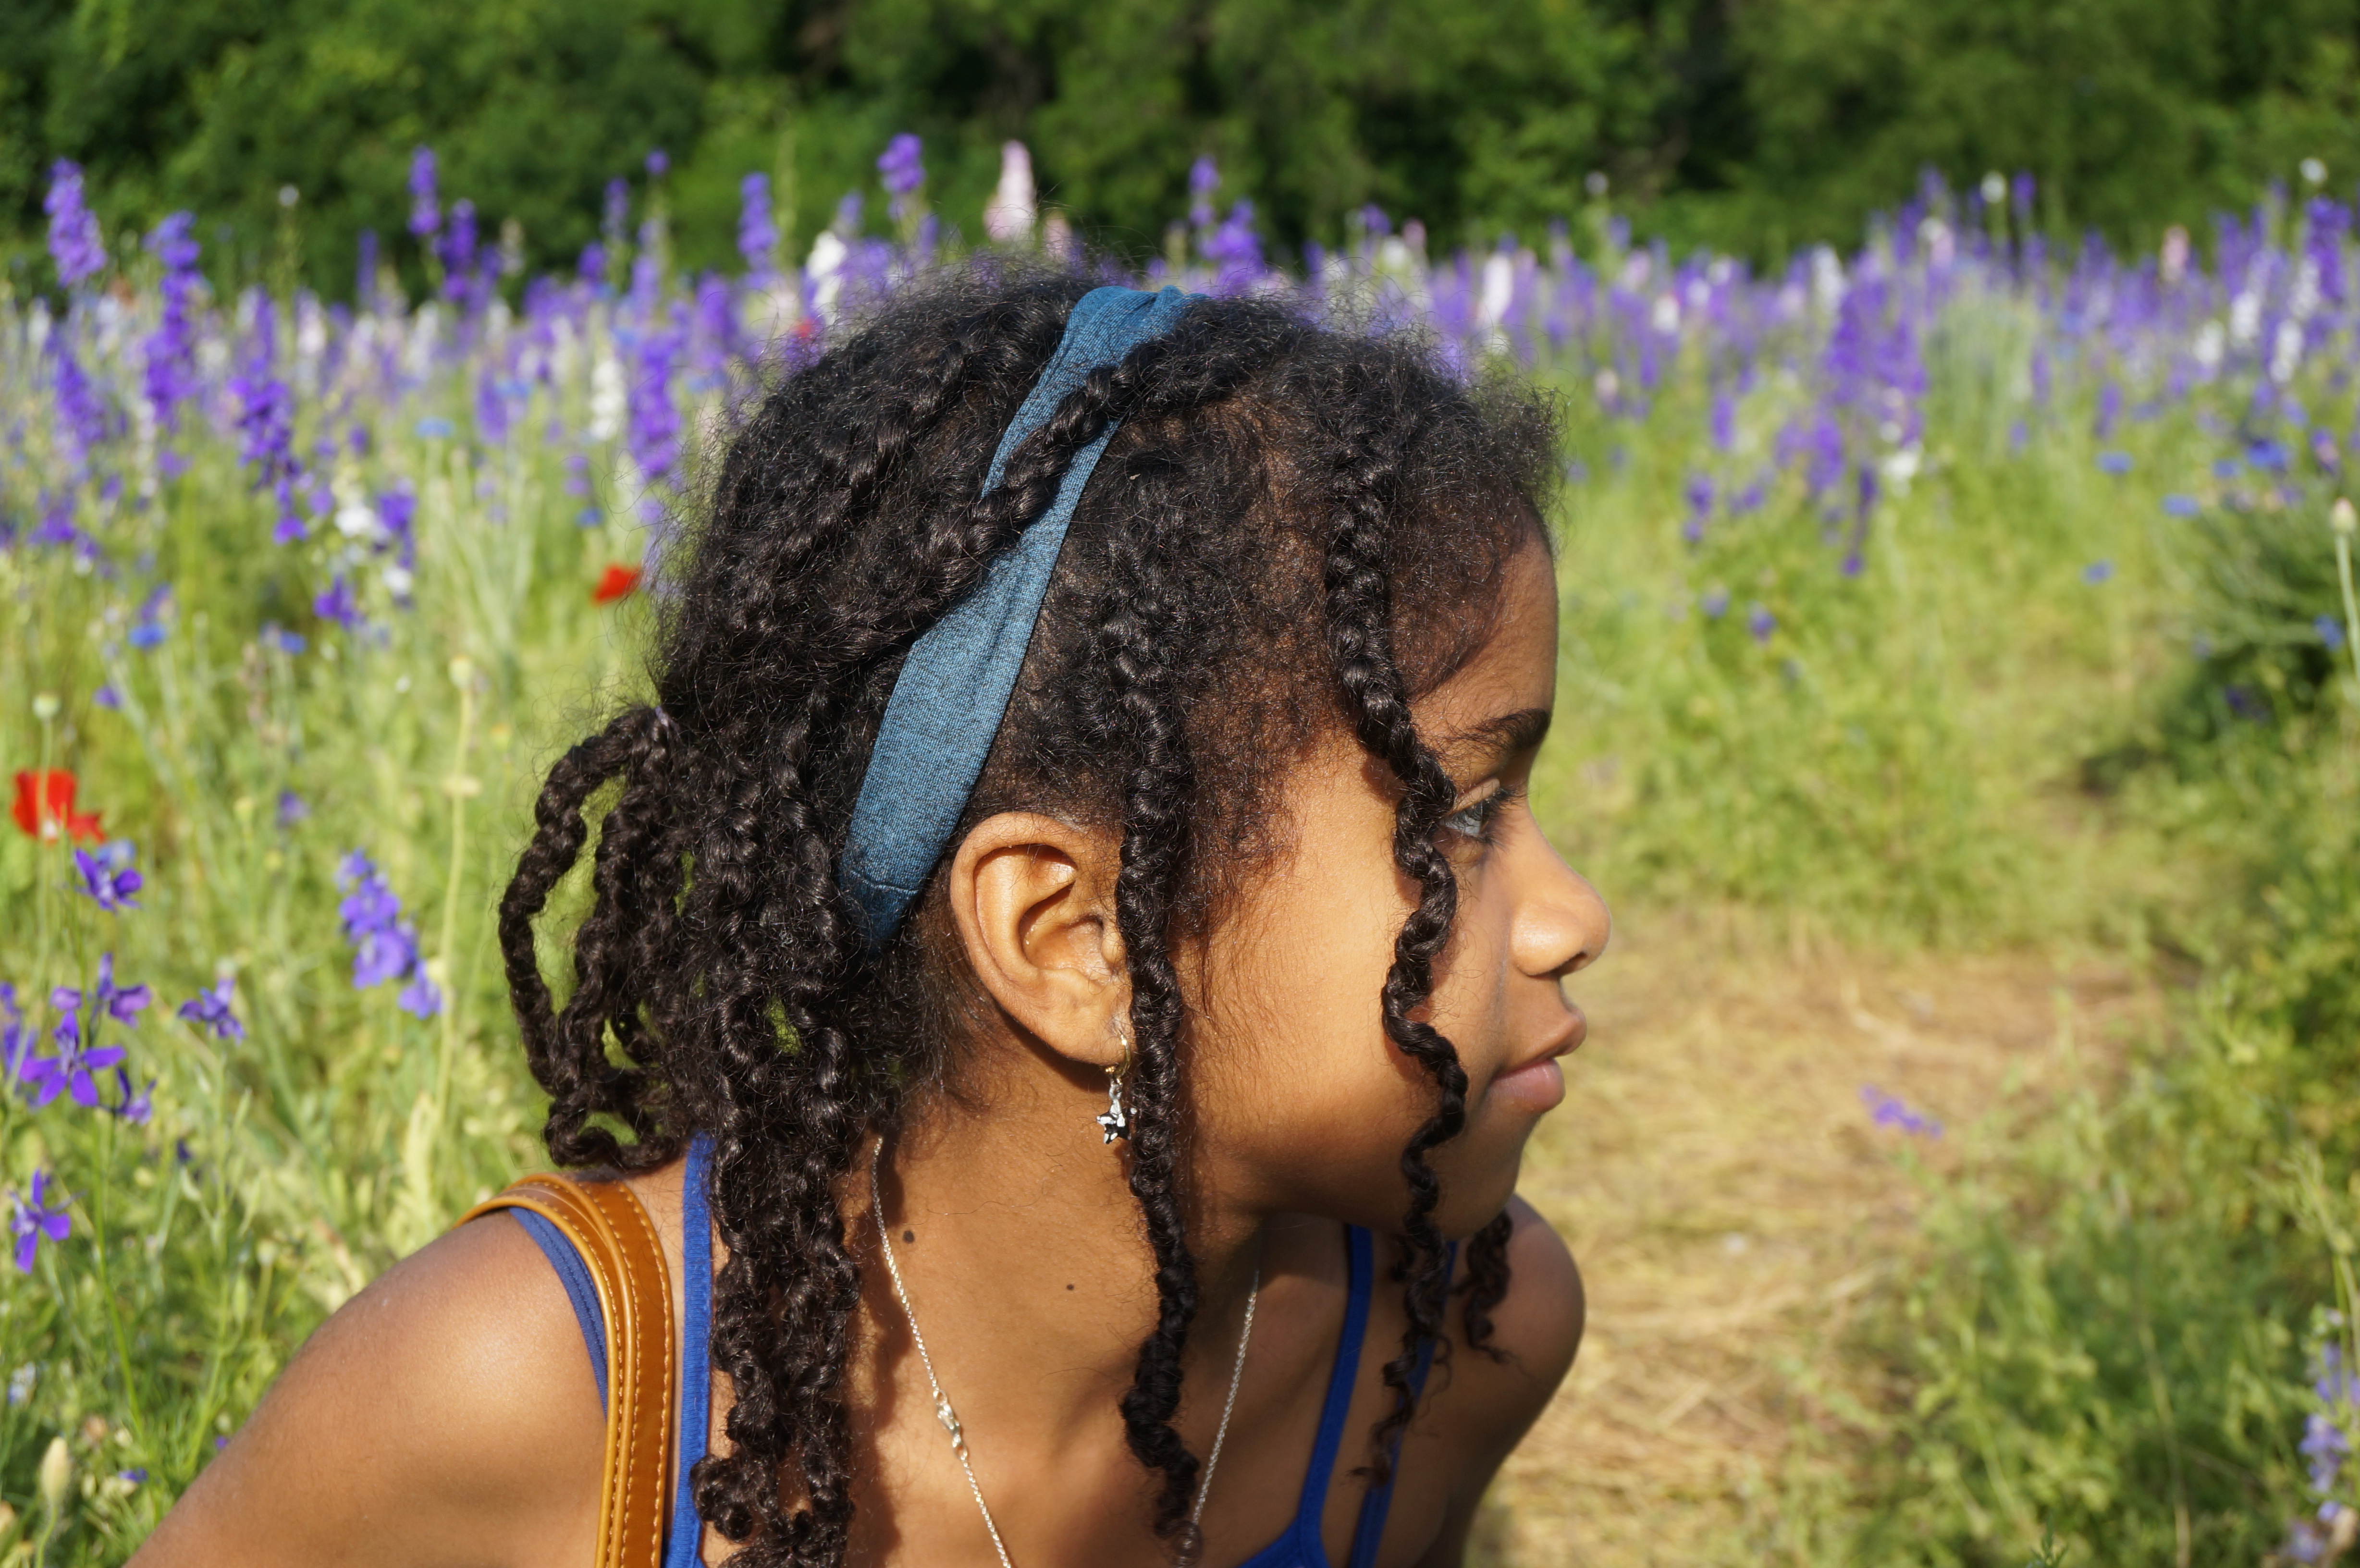 photograph of a young Black girl looking to the right. She is in a field with purple flowers